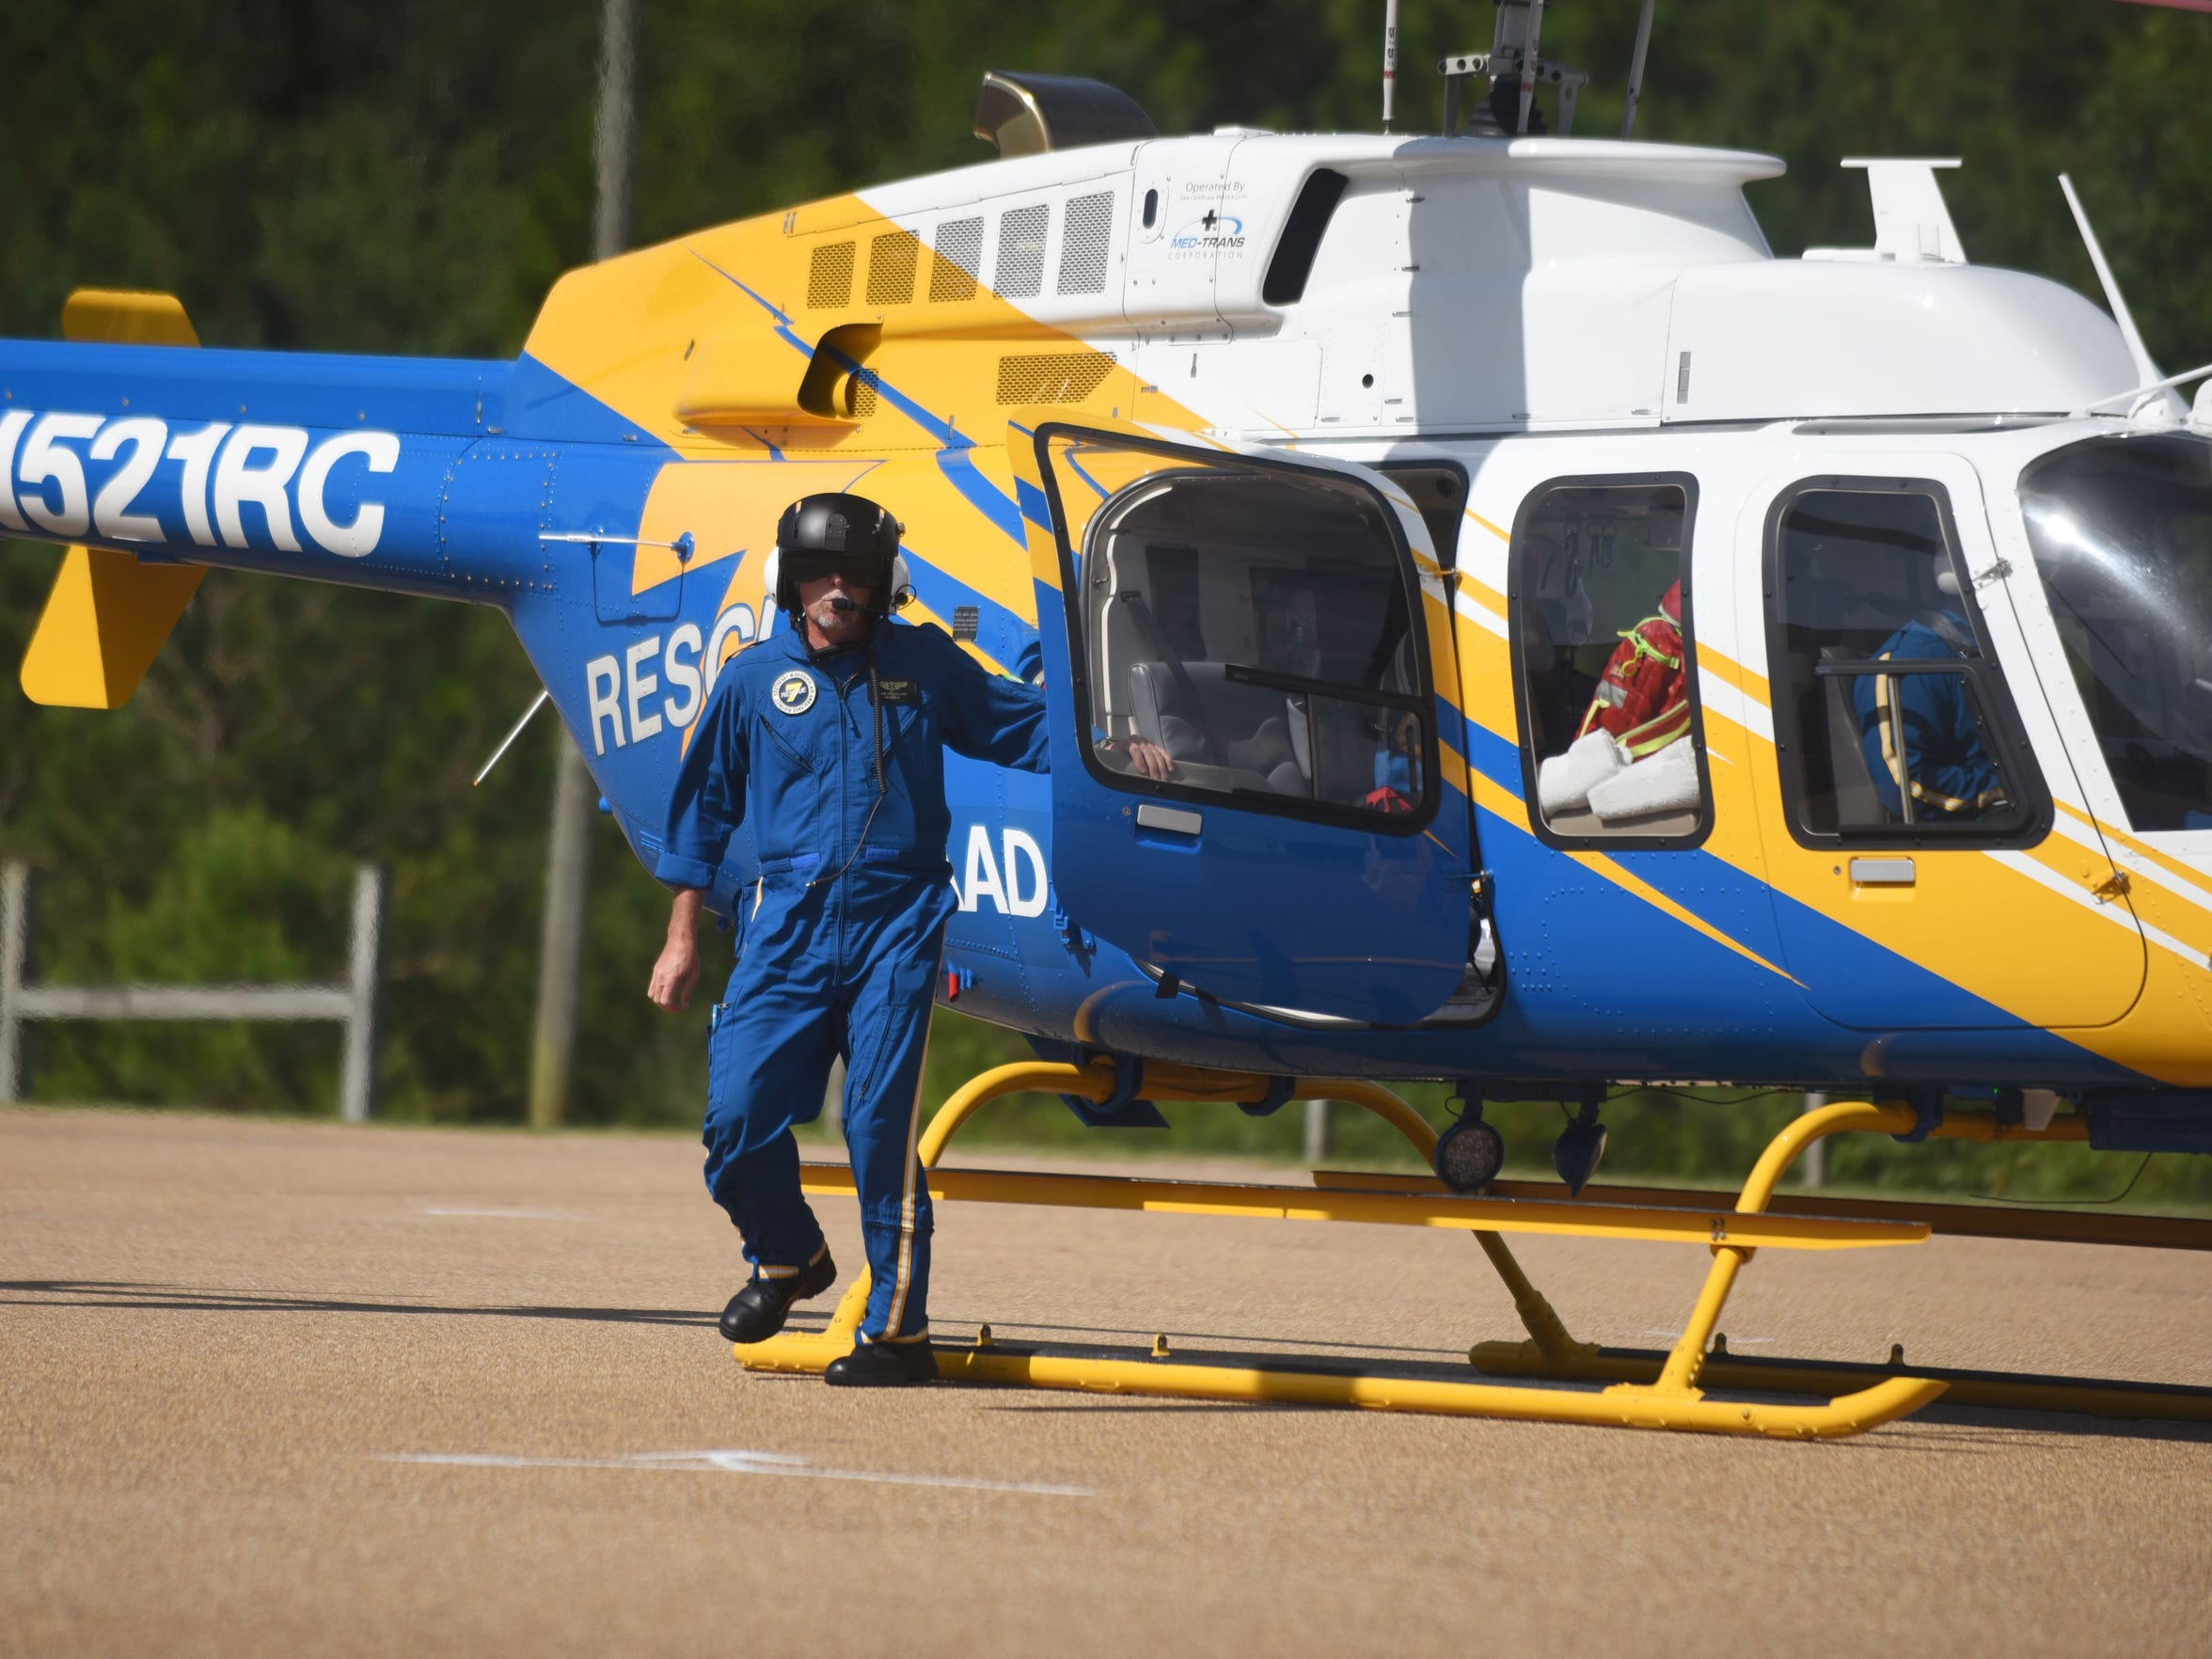 Med-Trans operates private air ambulances in the Pine Belt area. If they're picked up by Med-Trans, privately insured patients can expect to be charged a base rate of $22,710 base rate plus $216 for every mile they travel.